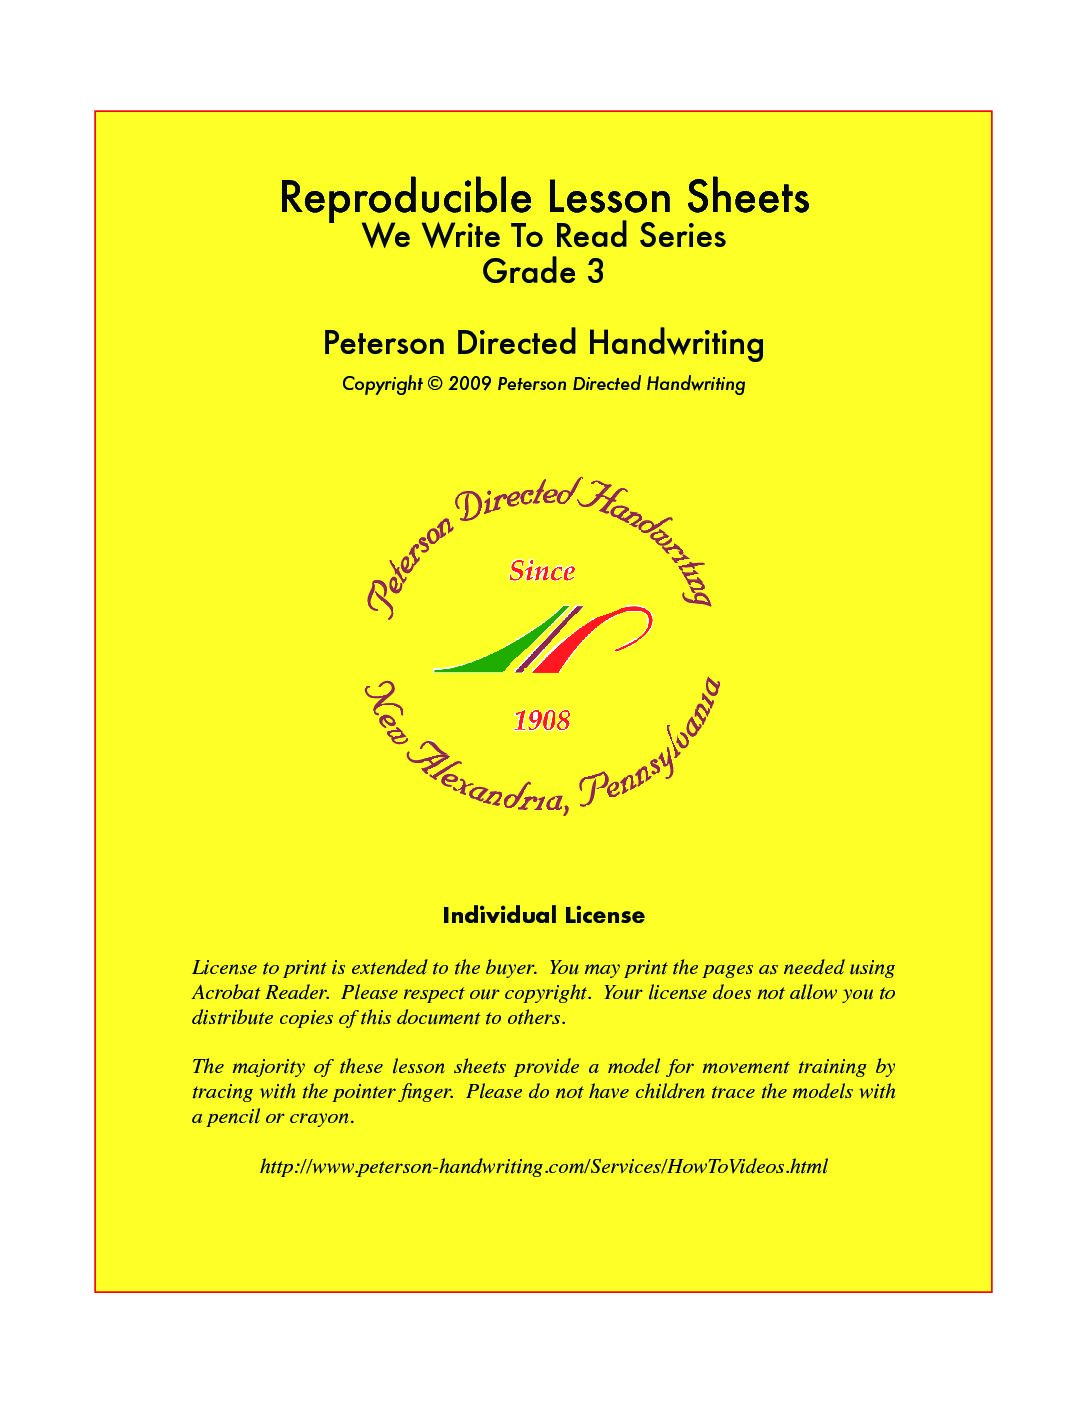 Reproducible Lesson Sheets Grade Three